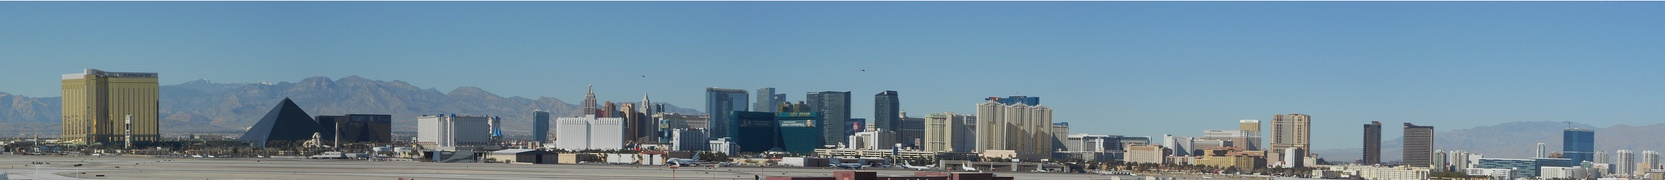 Las Vegas strip panorama 1.jpg